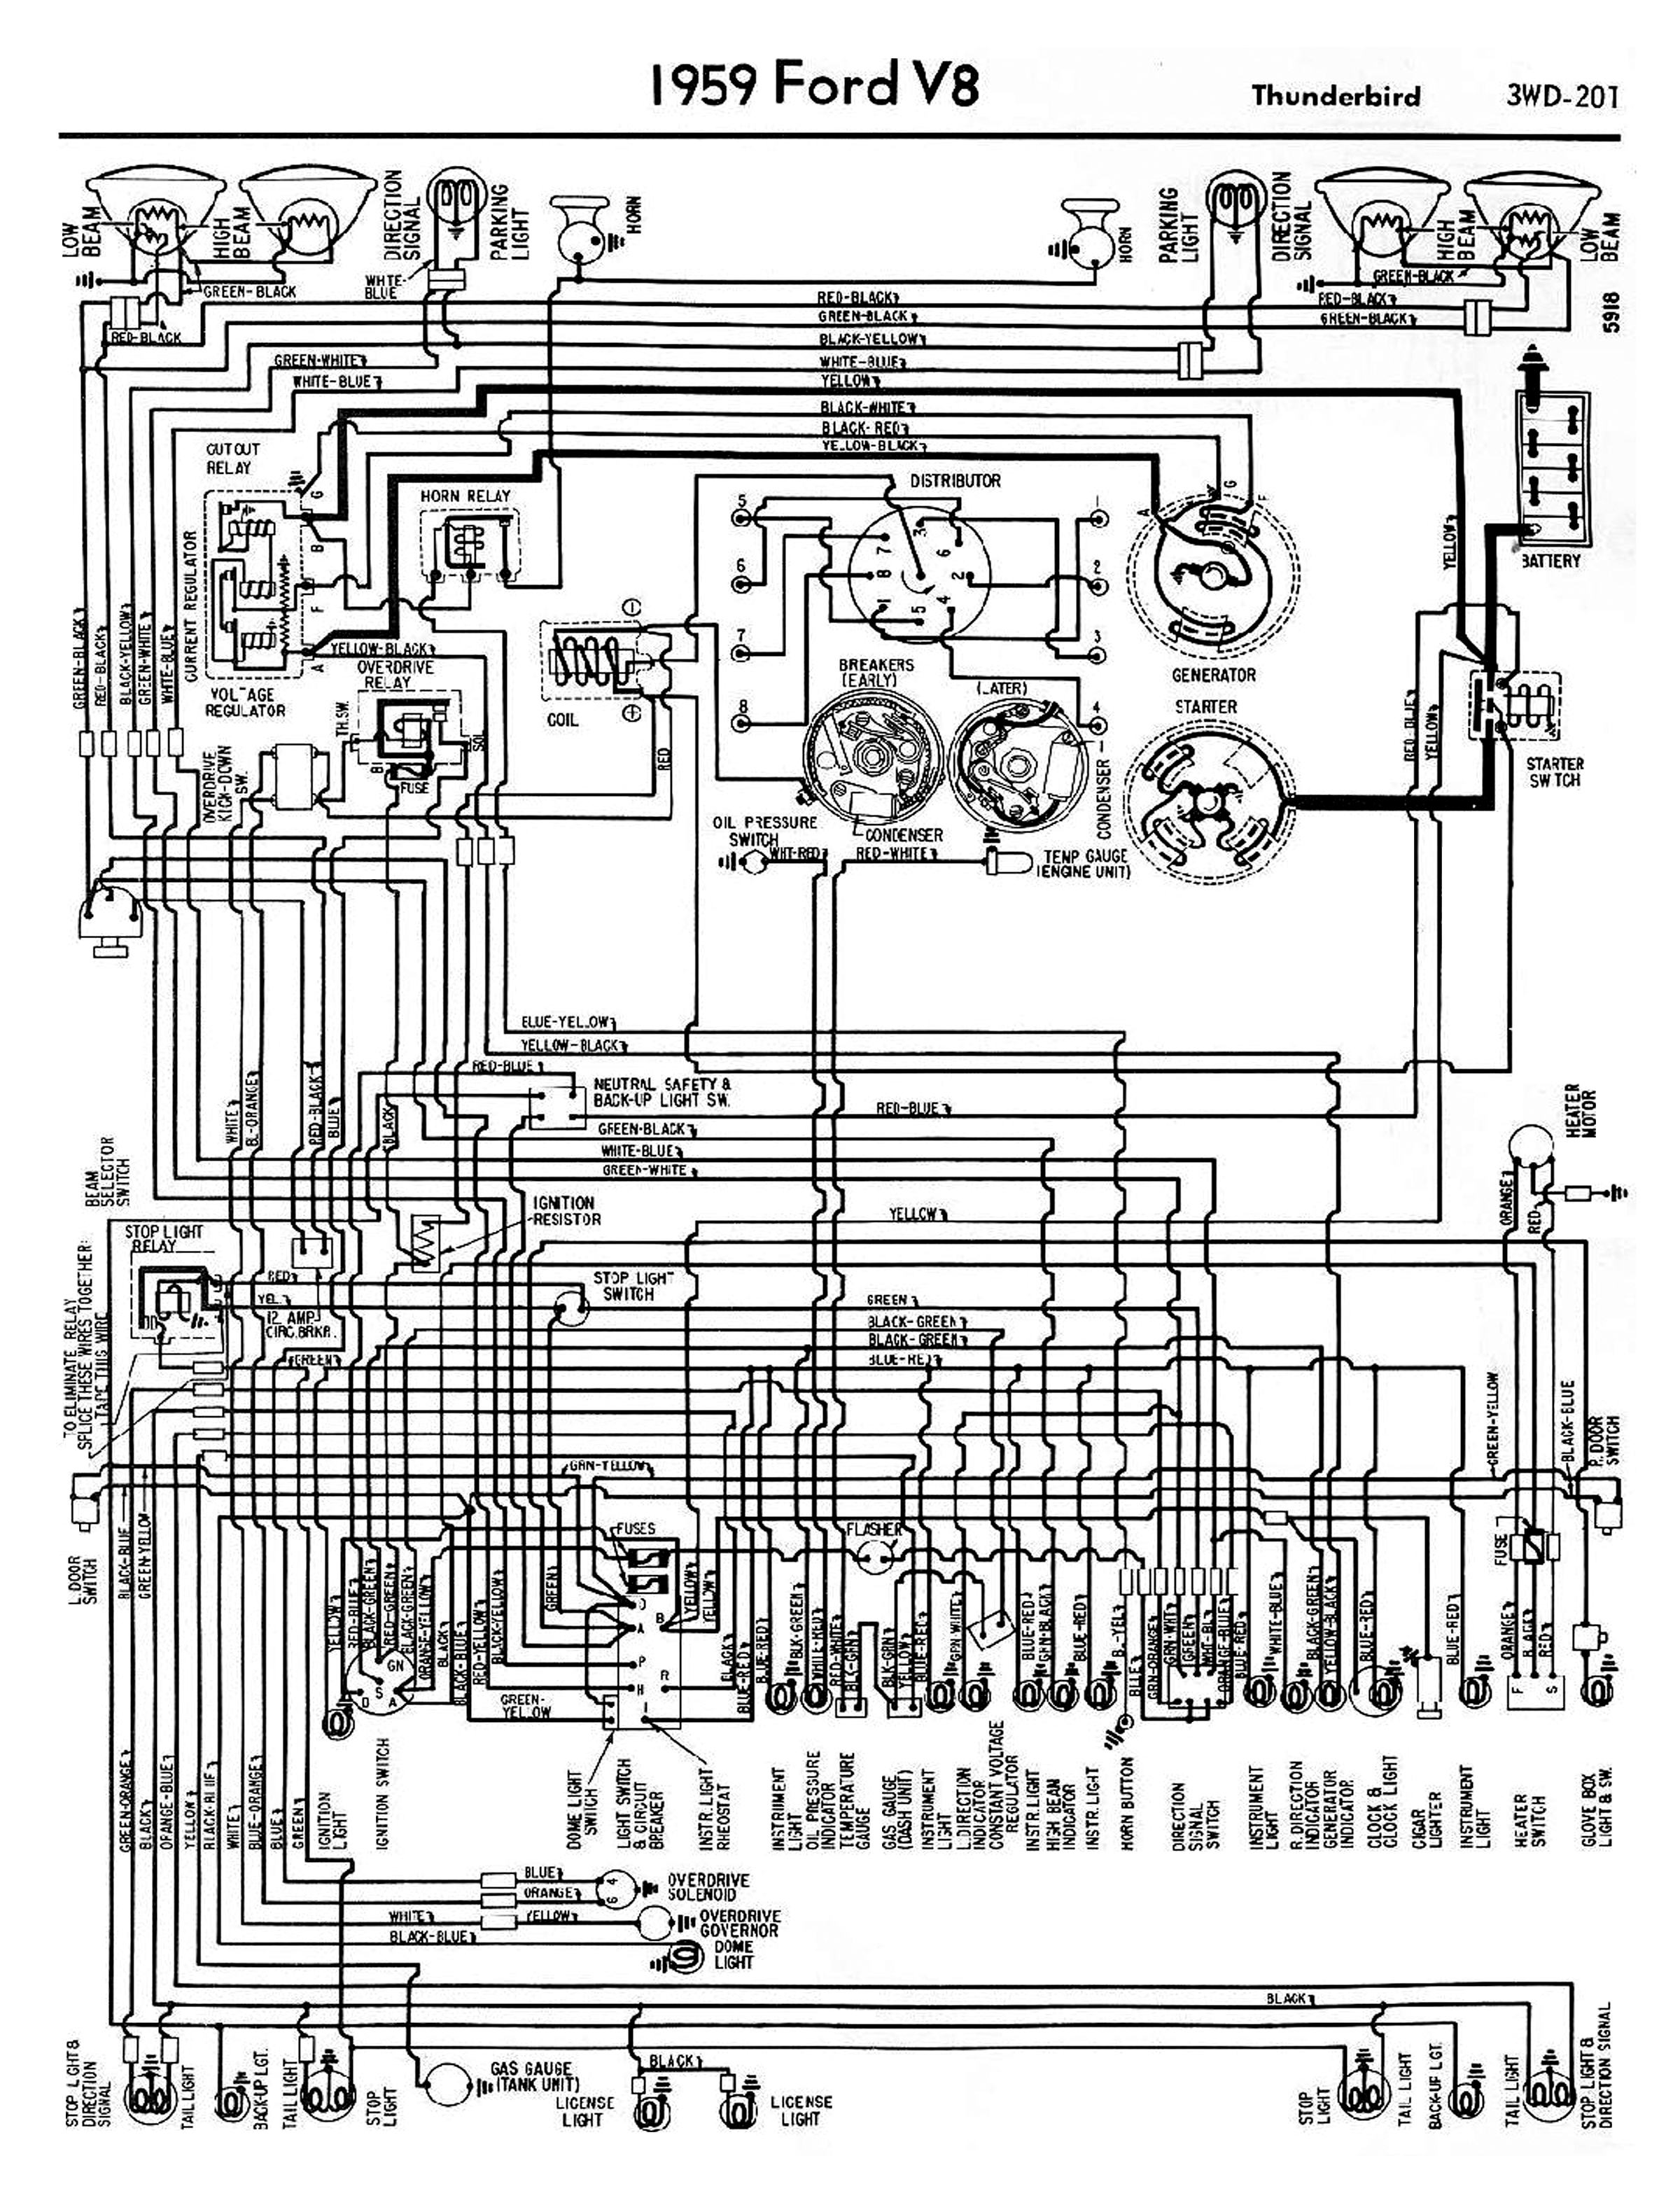 1968 Ford F100 Wiring Schematics Books Of Diagram Turn Signal For Get Free Image About